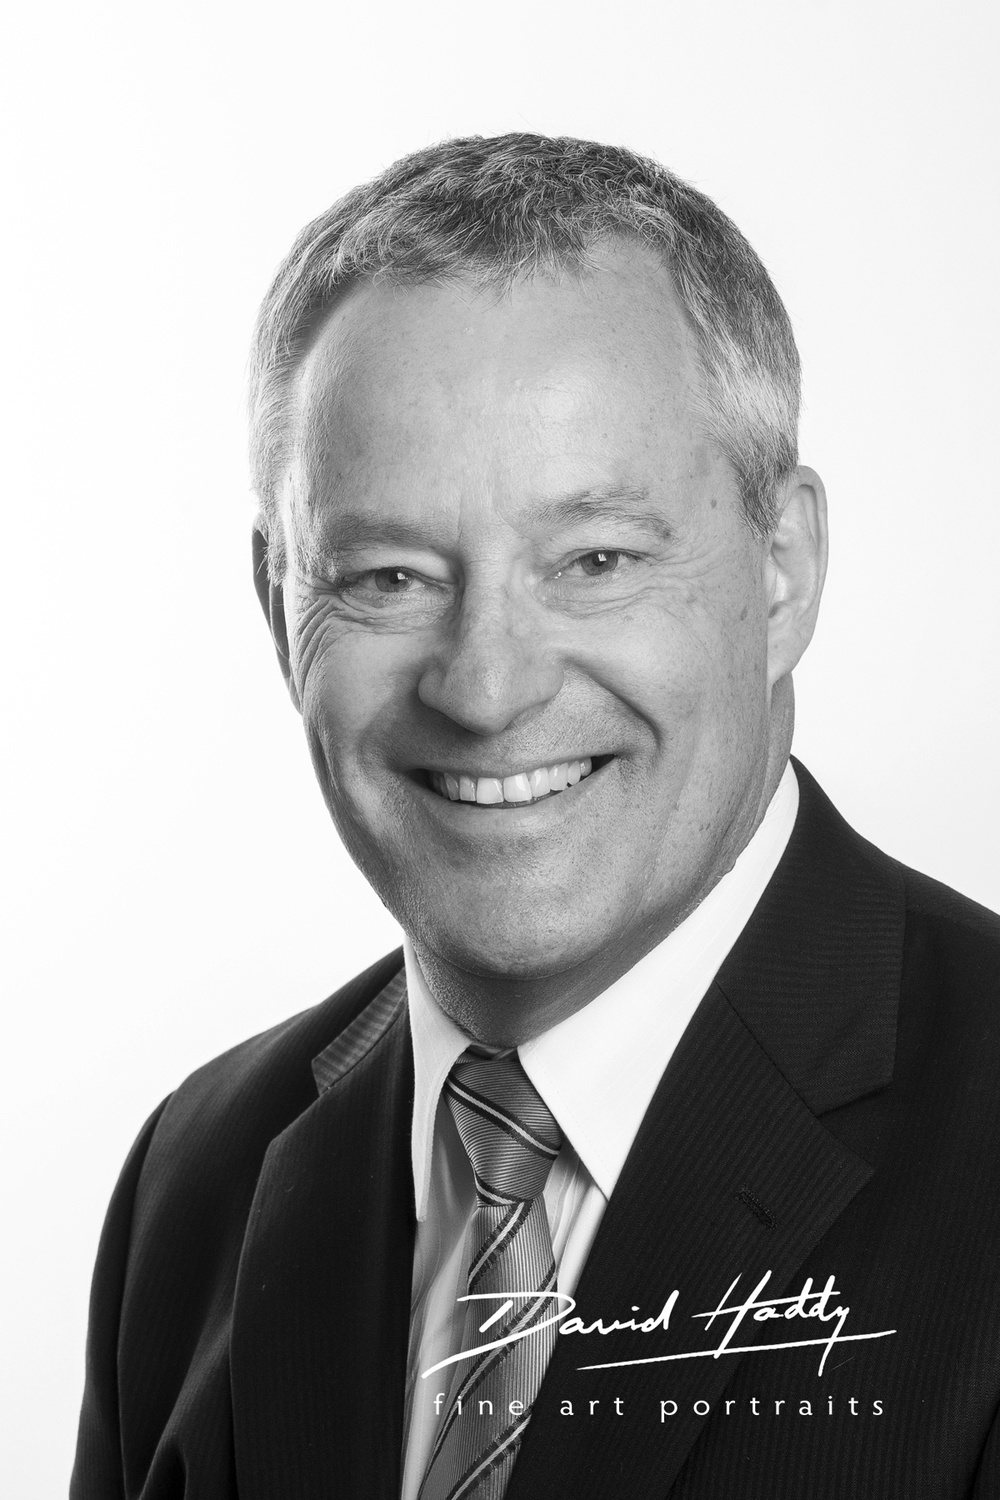 Business Head Shot by Adelaide photographer David Haddy